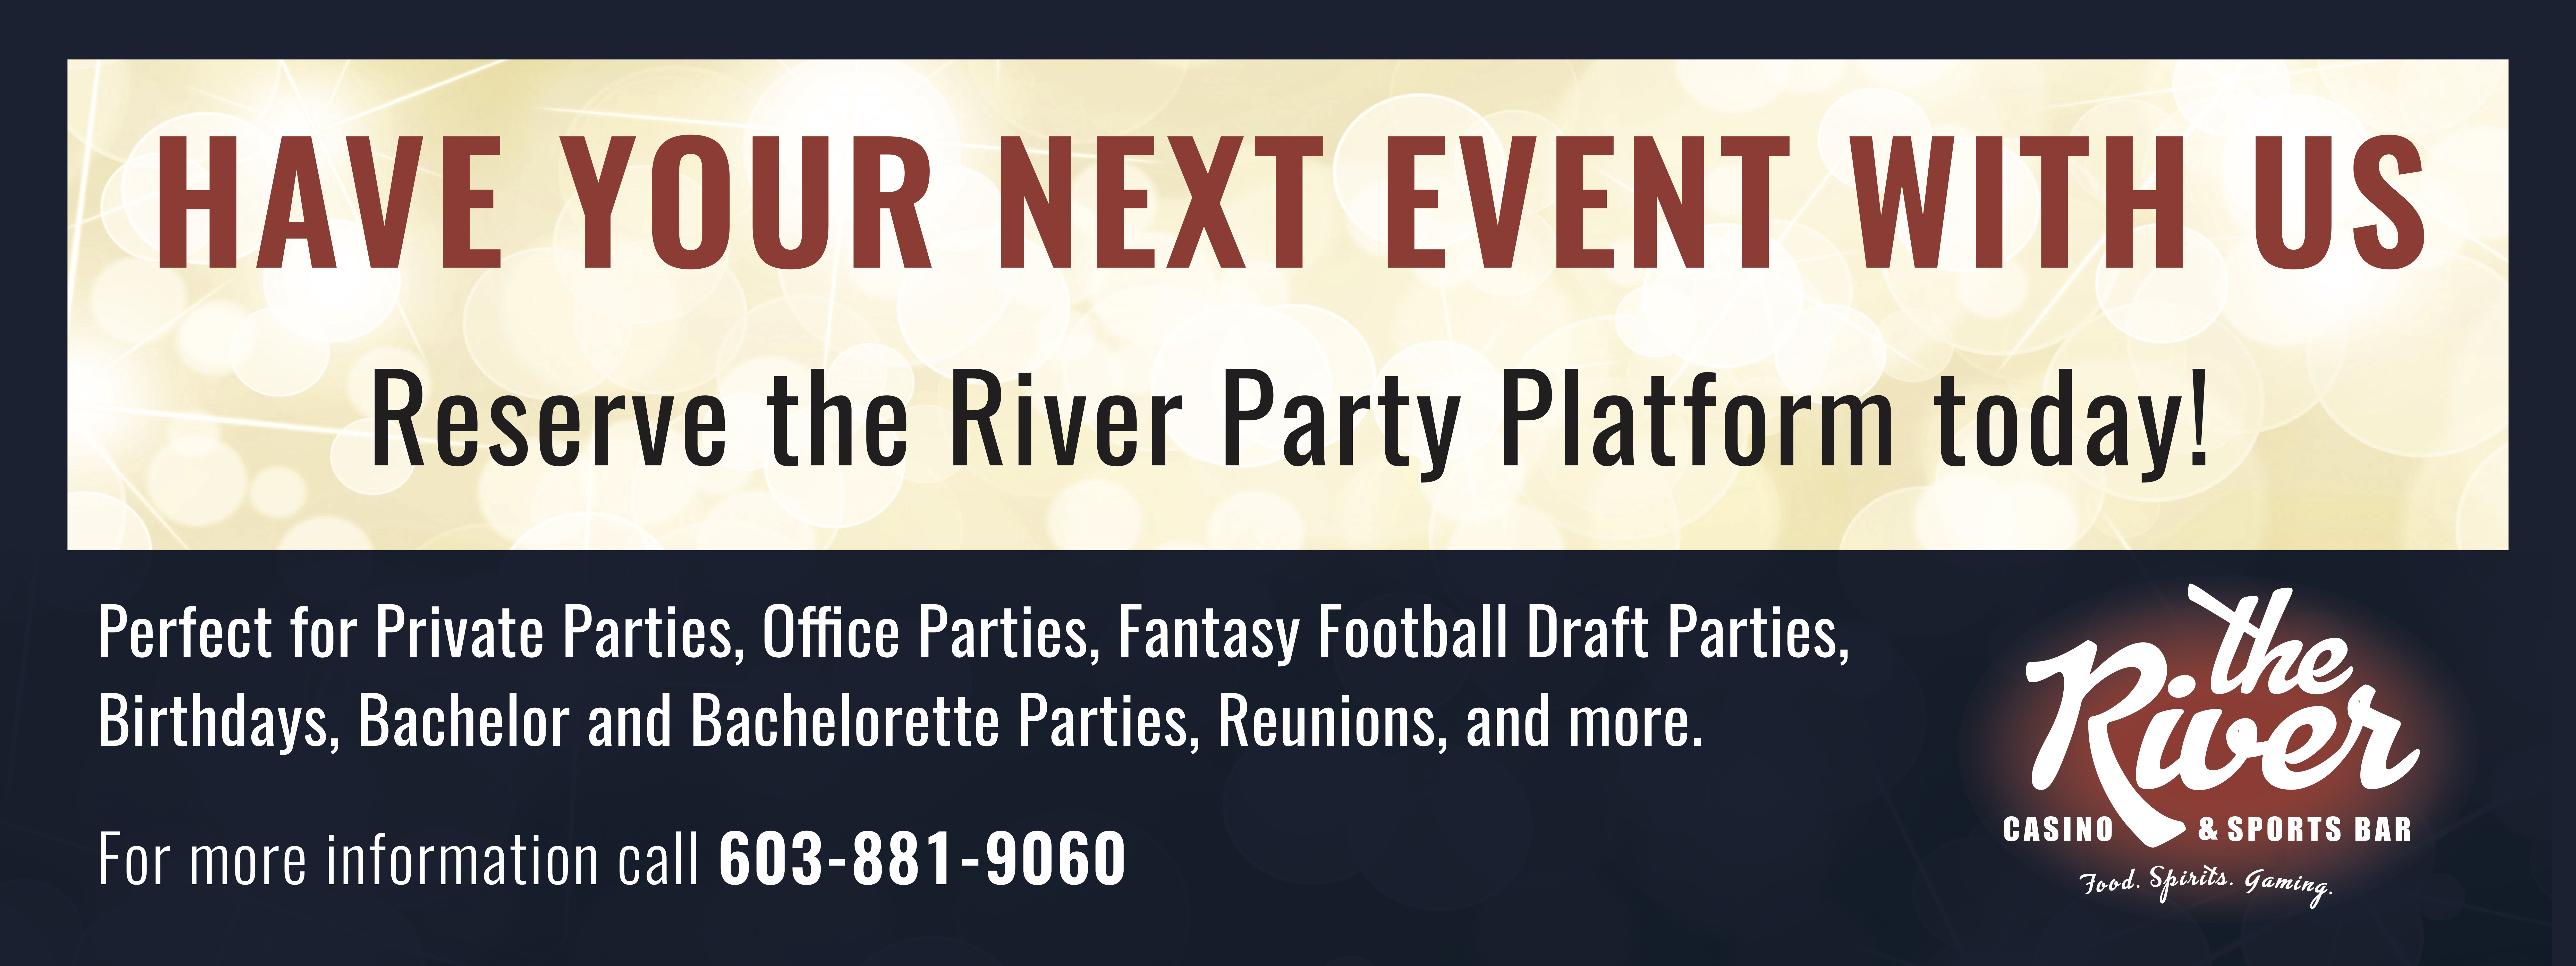 the River Casino and Sports Bar Party Banner